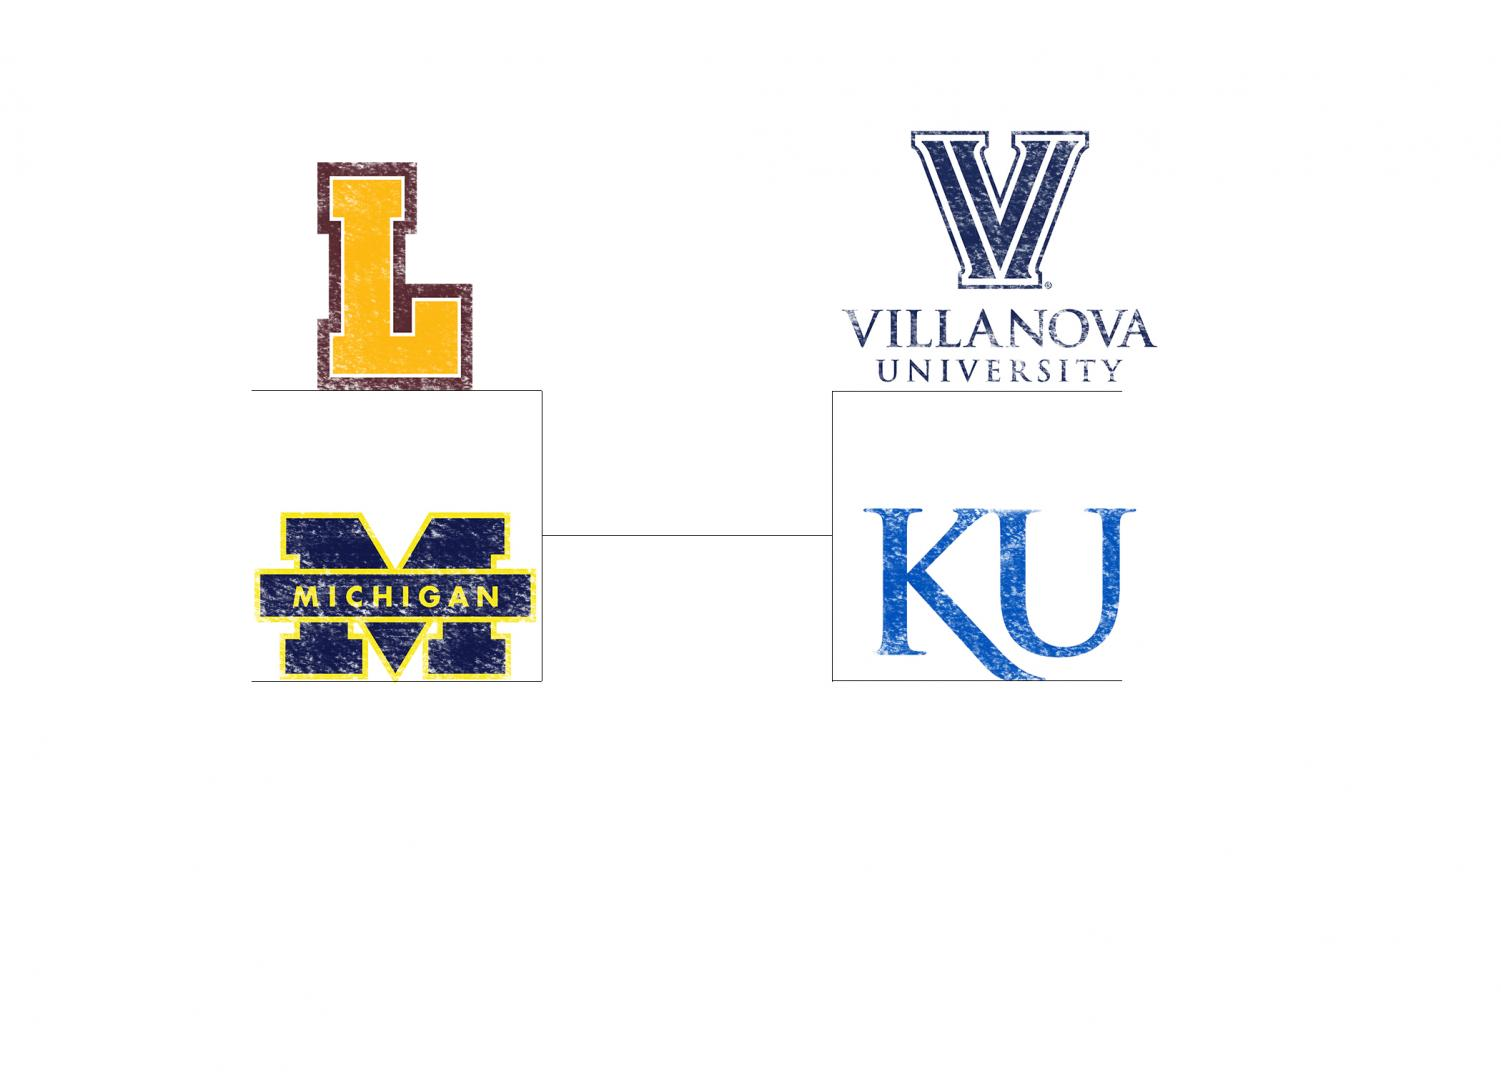 March Madness is winding down with the Final Four getting ready to compete. The Final Four are Loyola-Chicago, University of Kansas, University of Michigan and Villanova University.